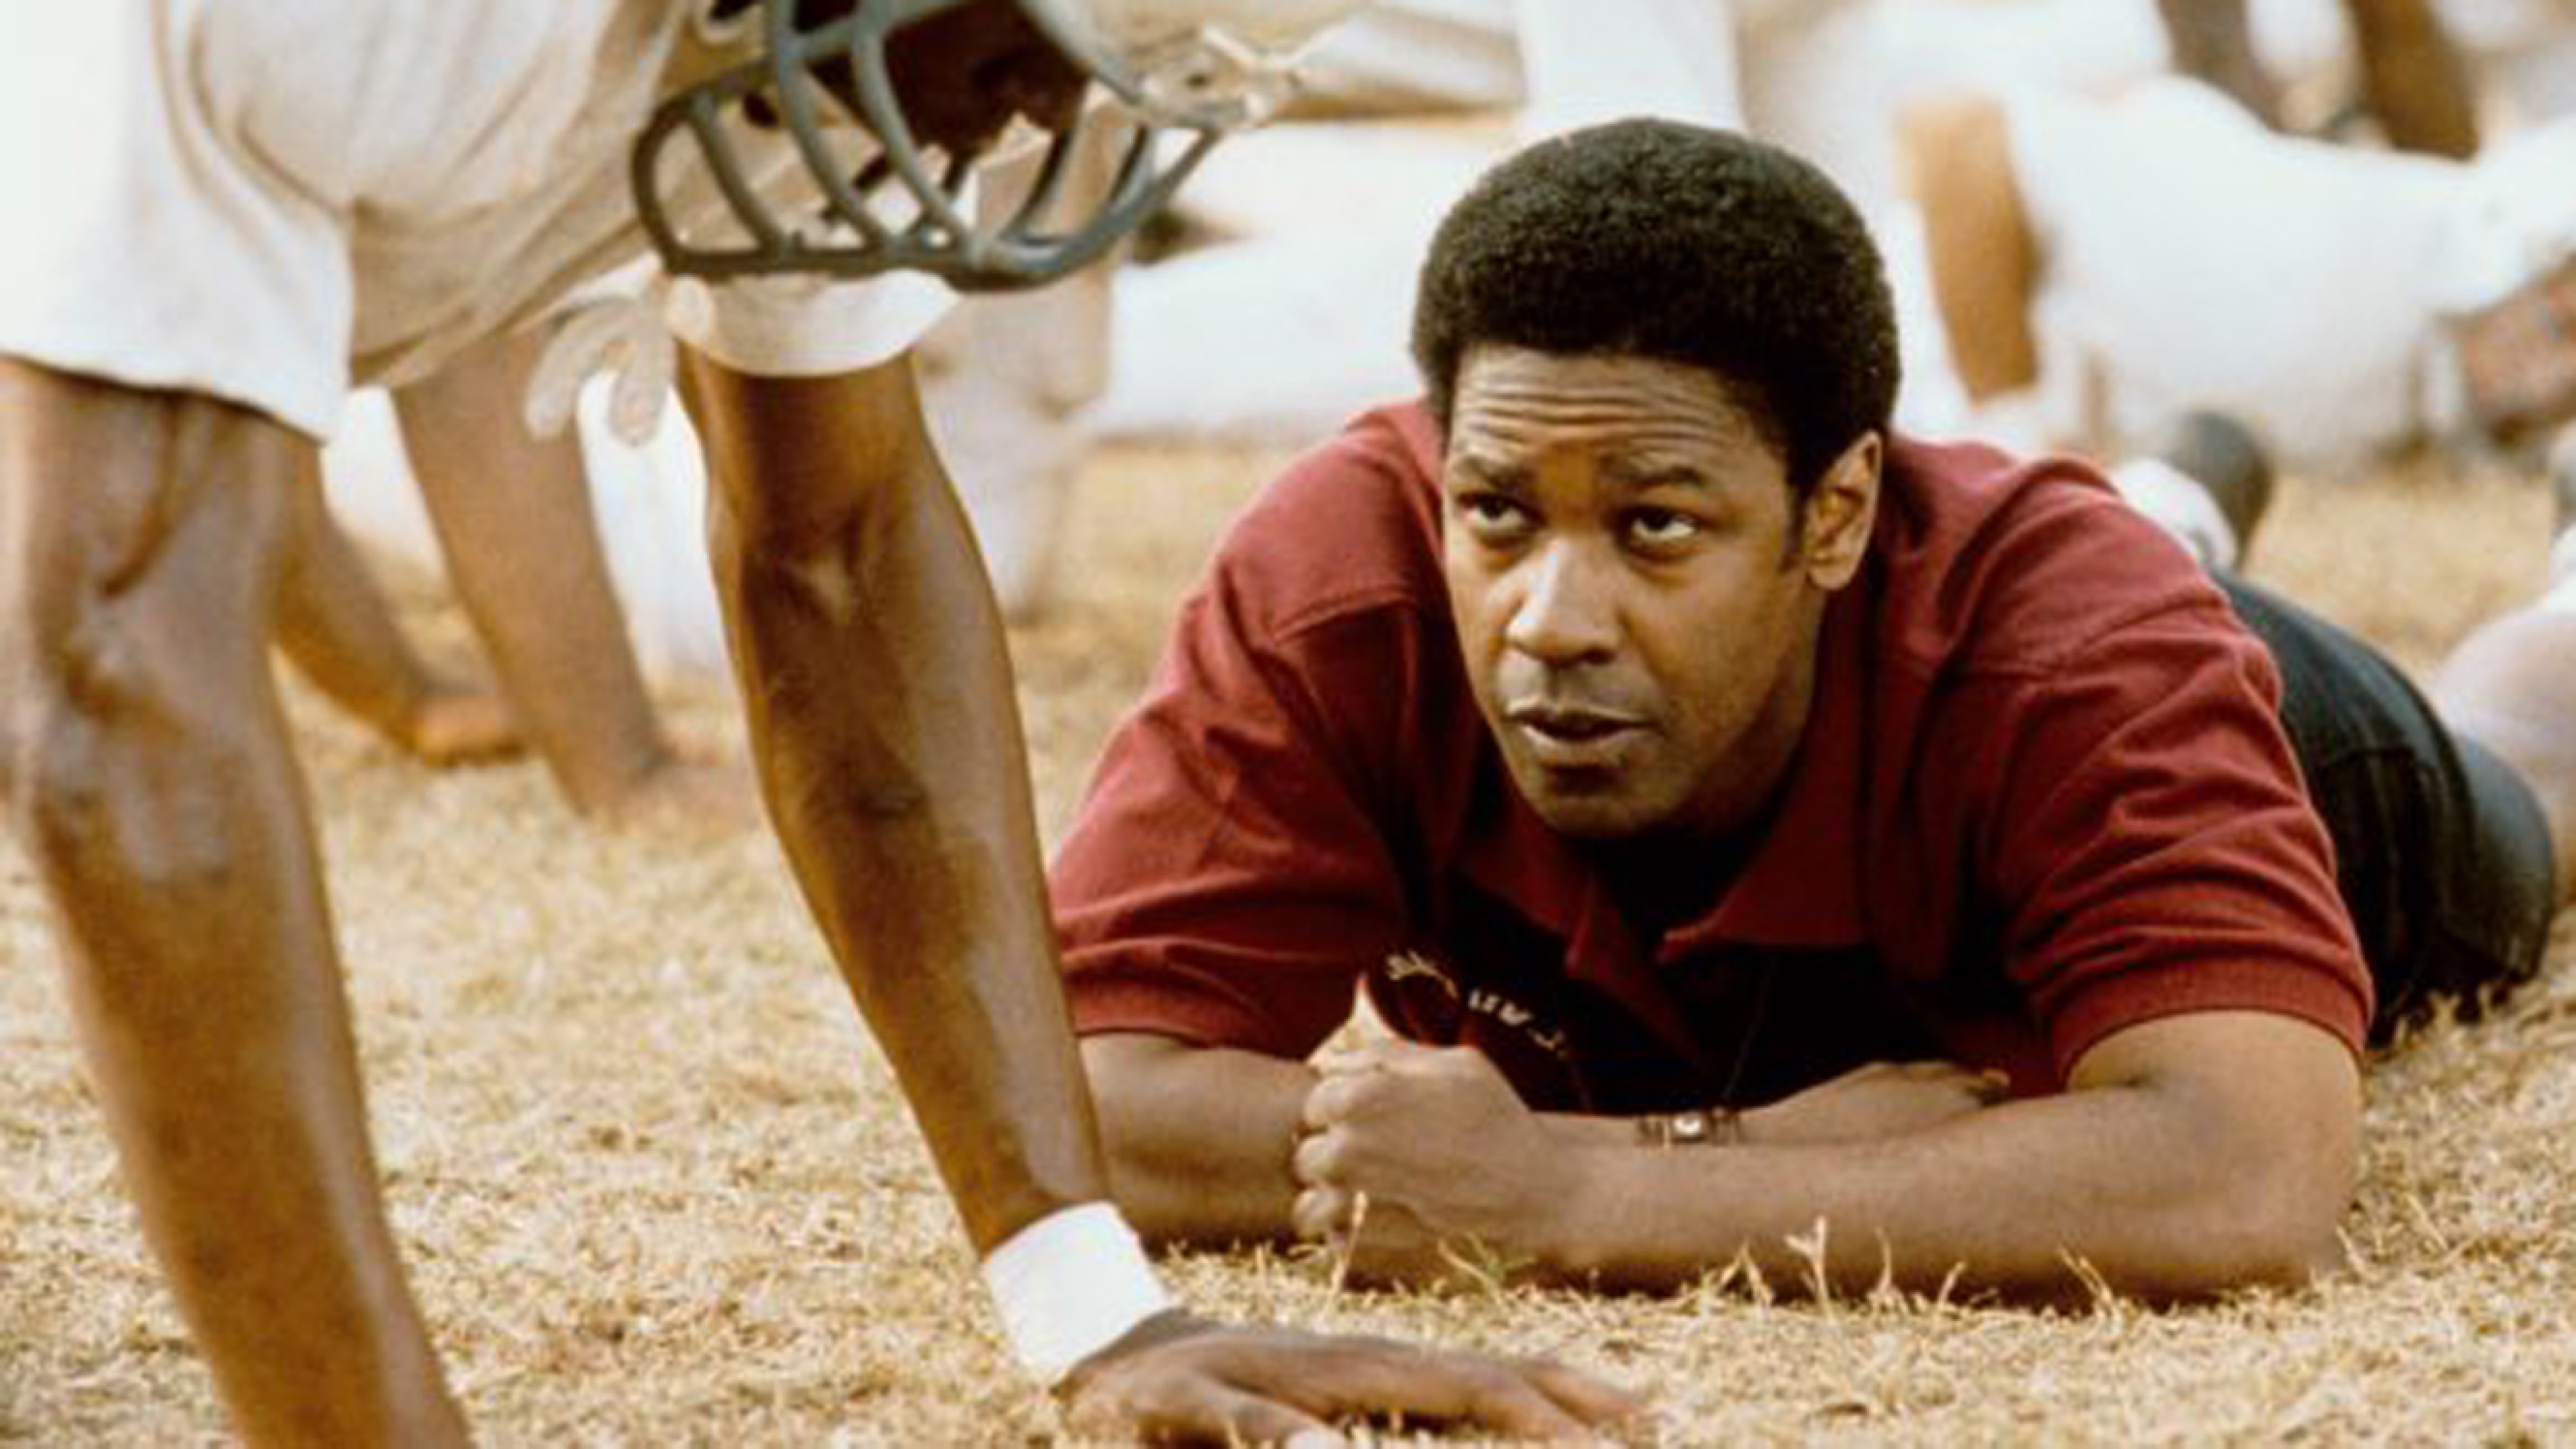 What Is Your Favorite Sports Movie